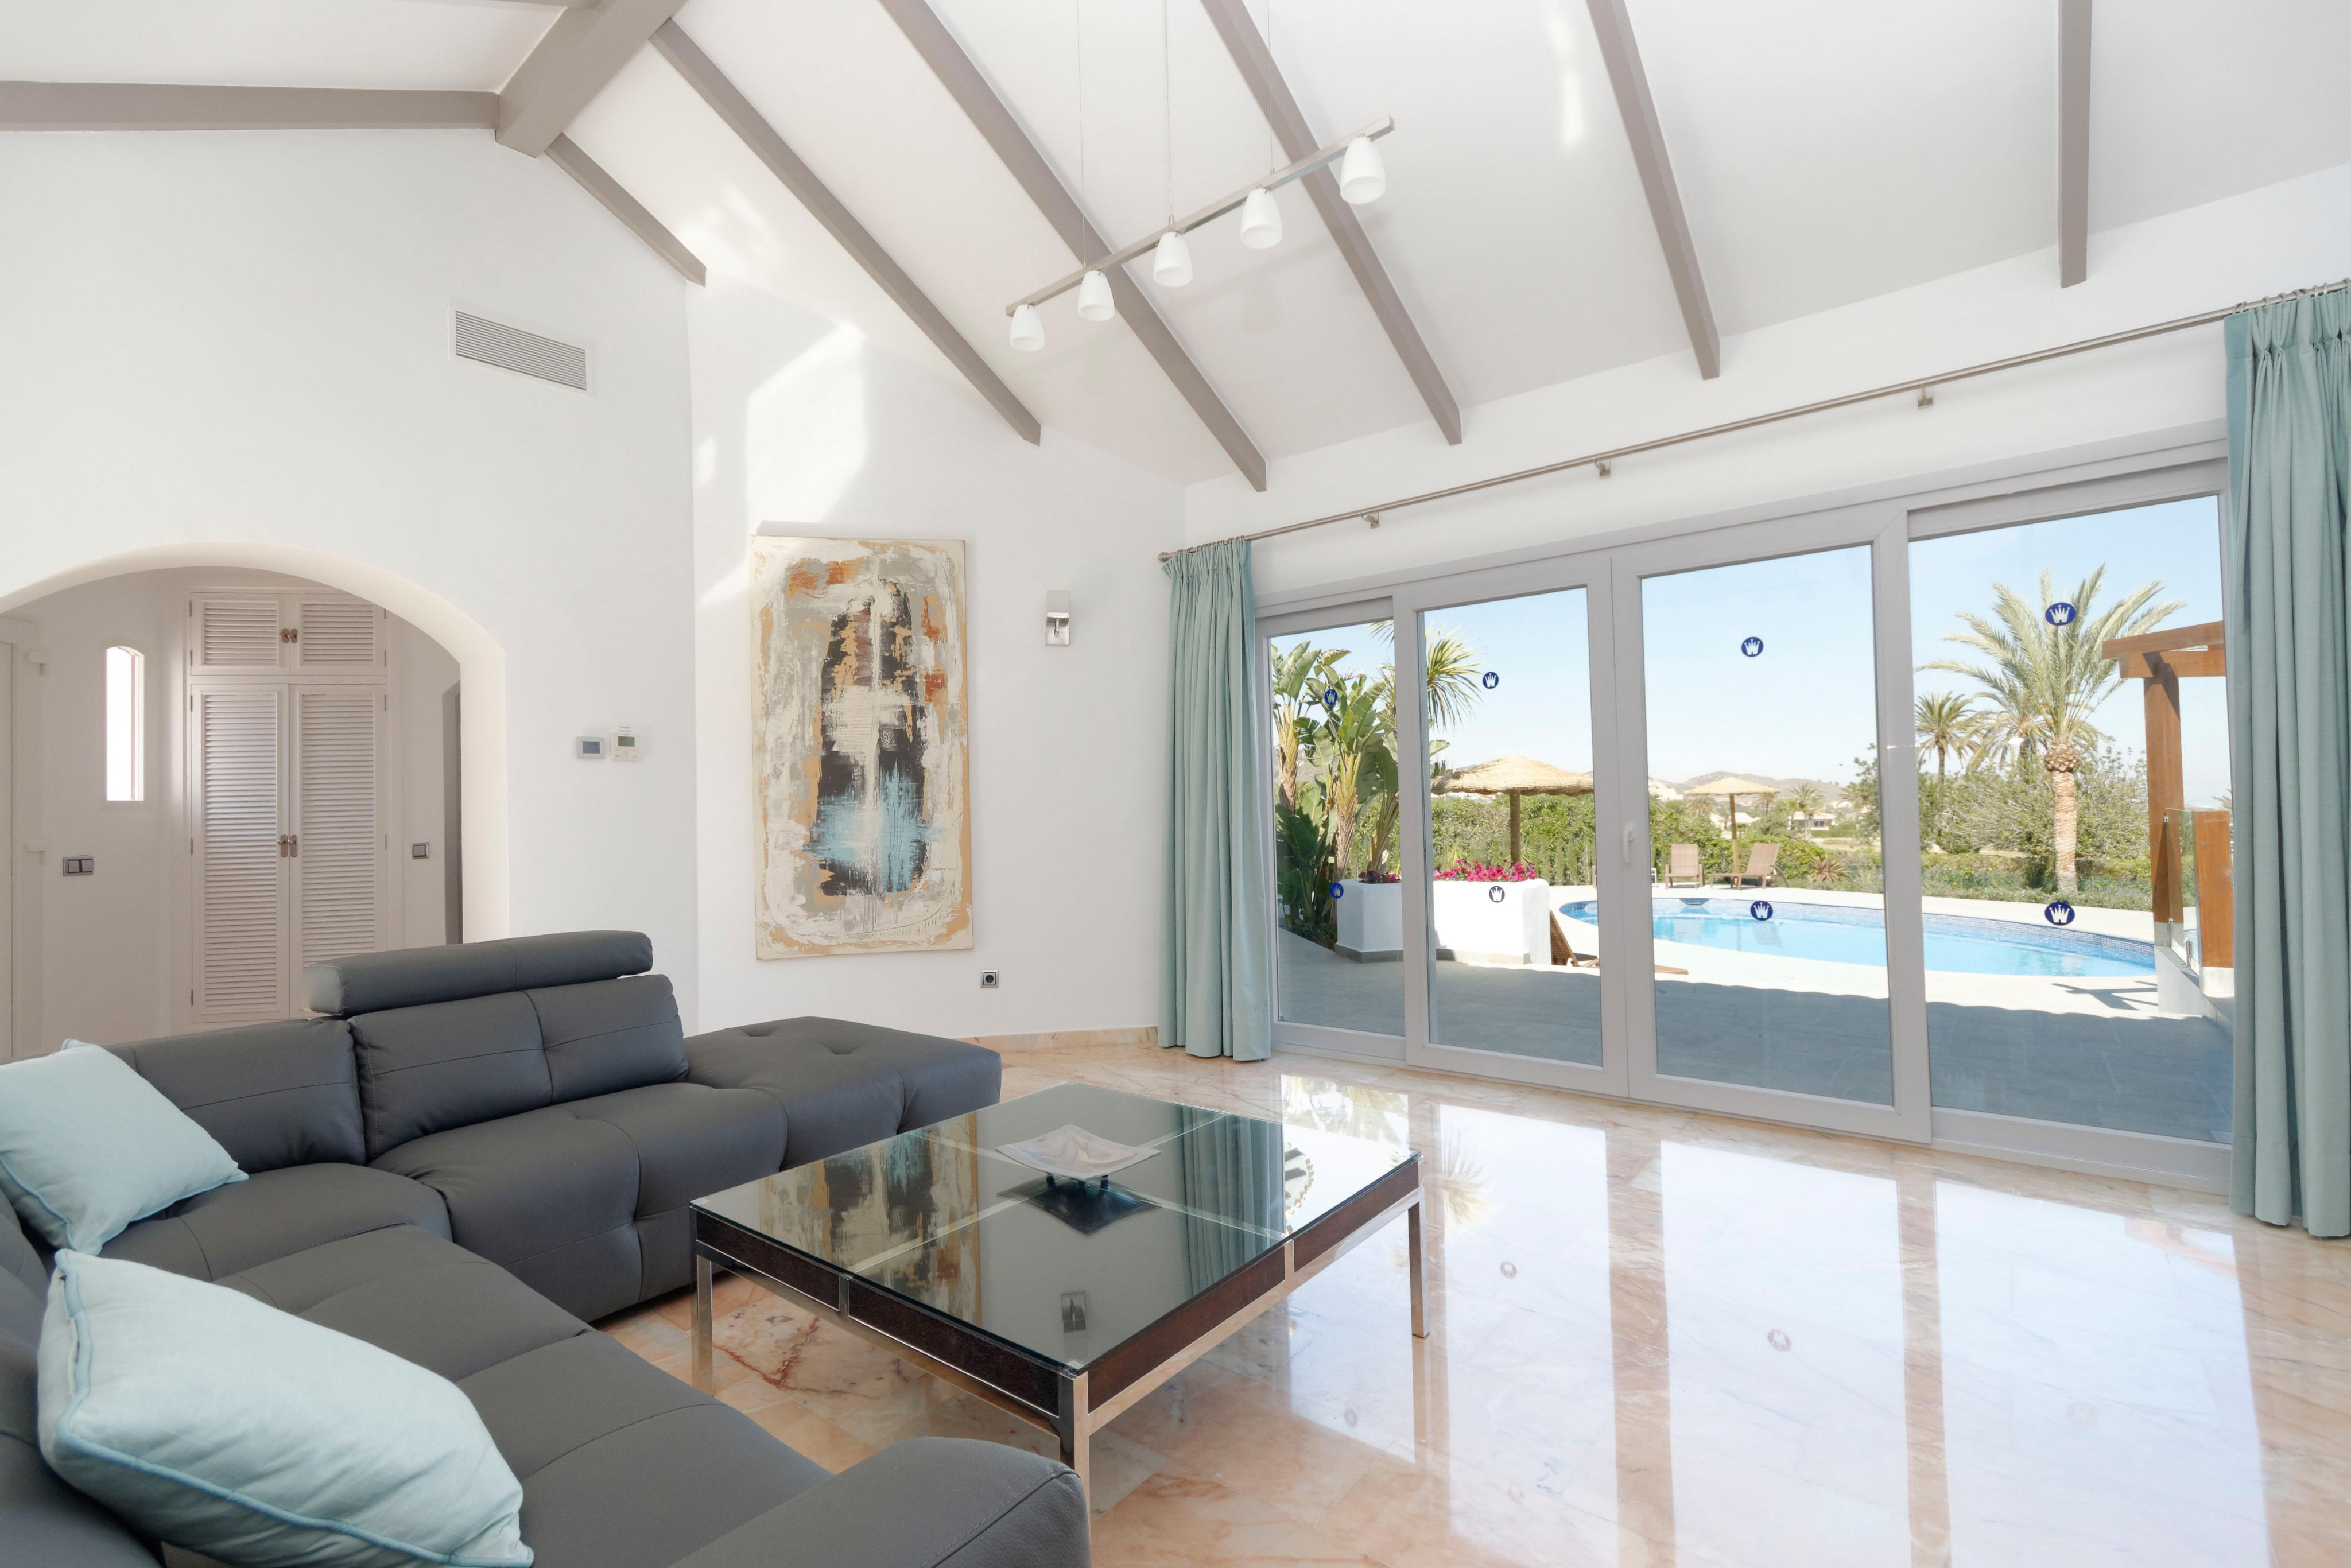 La Manga Club Resort - Individual Villa 524 4 Bedrooms, for rent